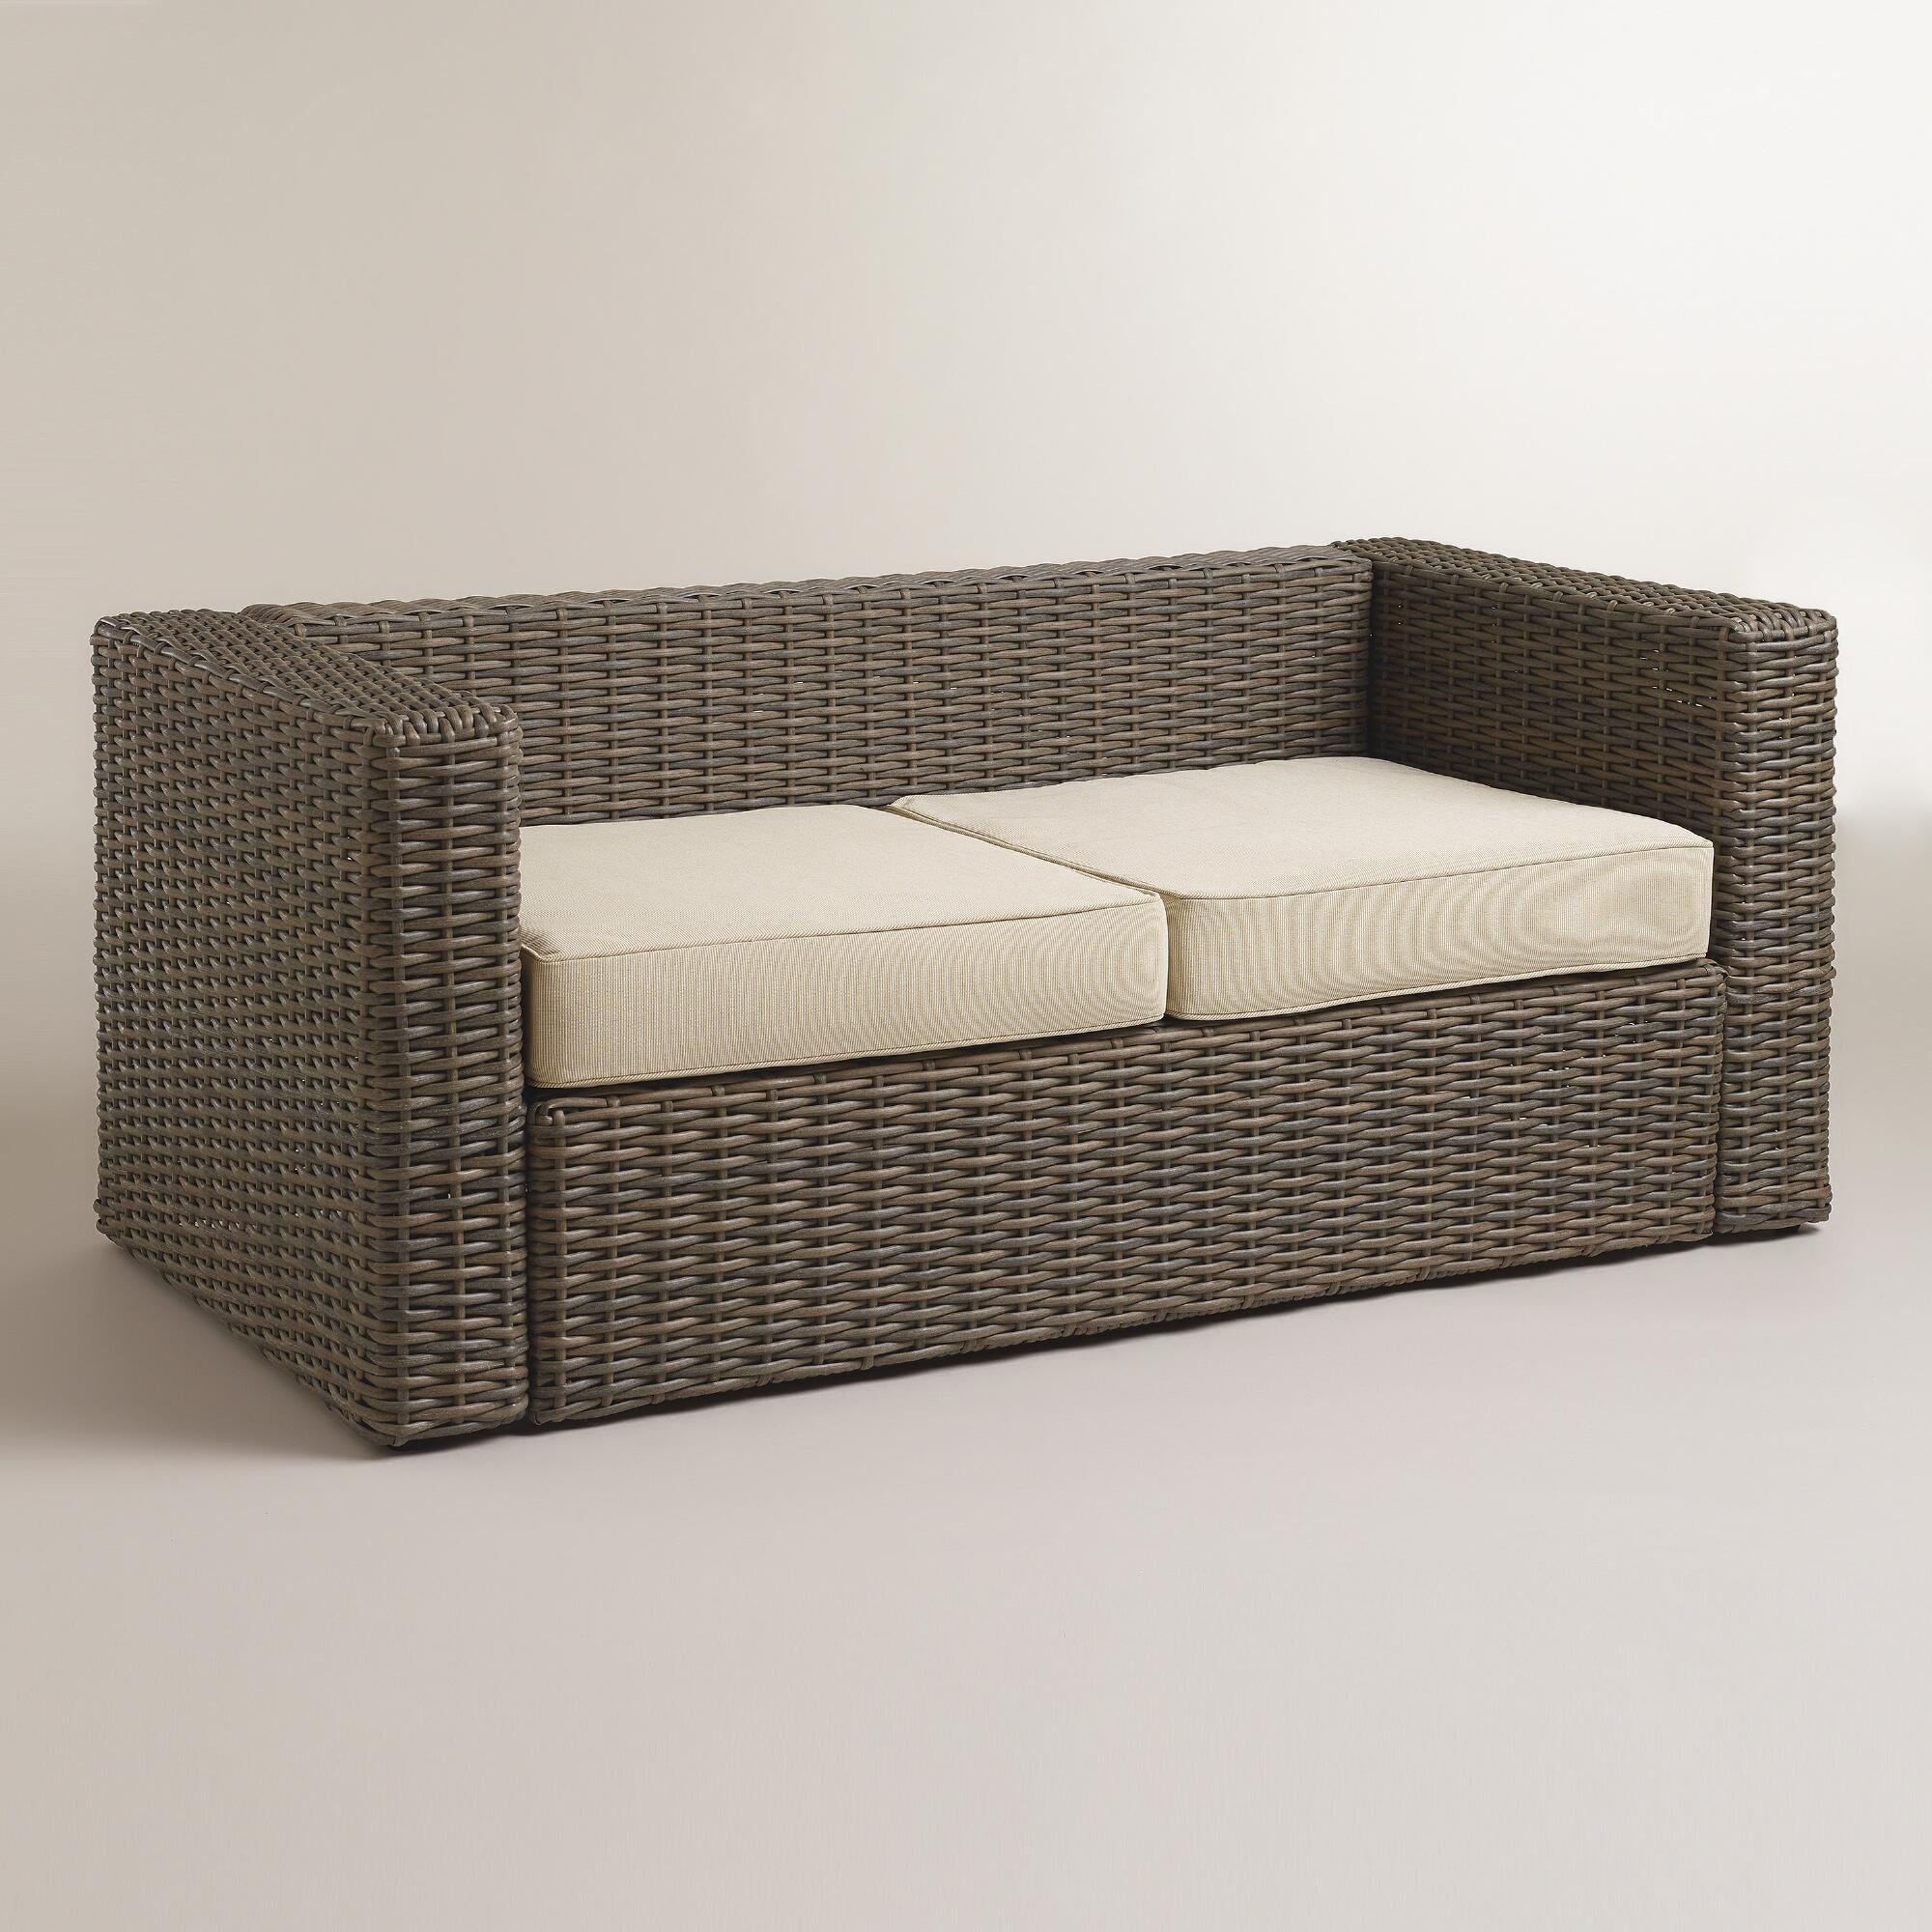 All-Weather Wicker Formentera Outdoor Bench With Cushions